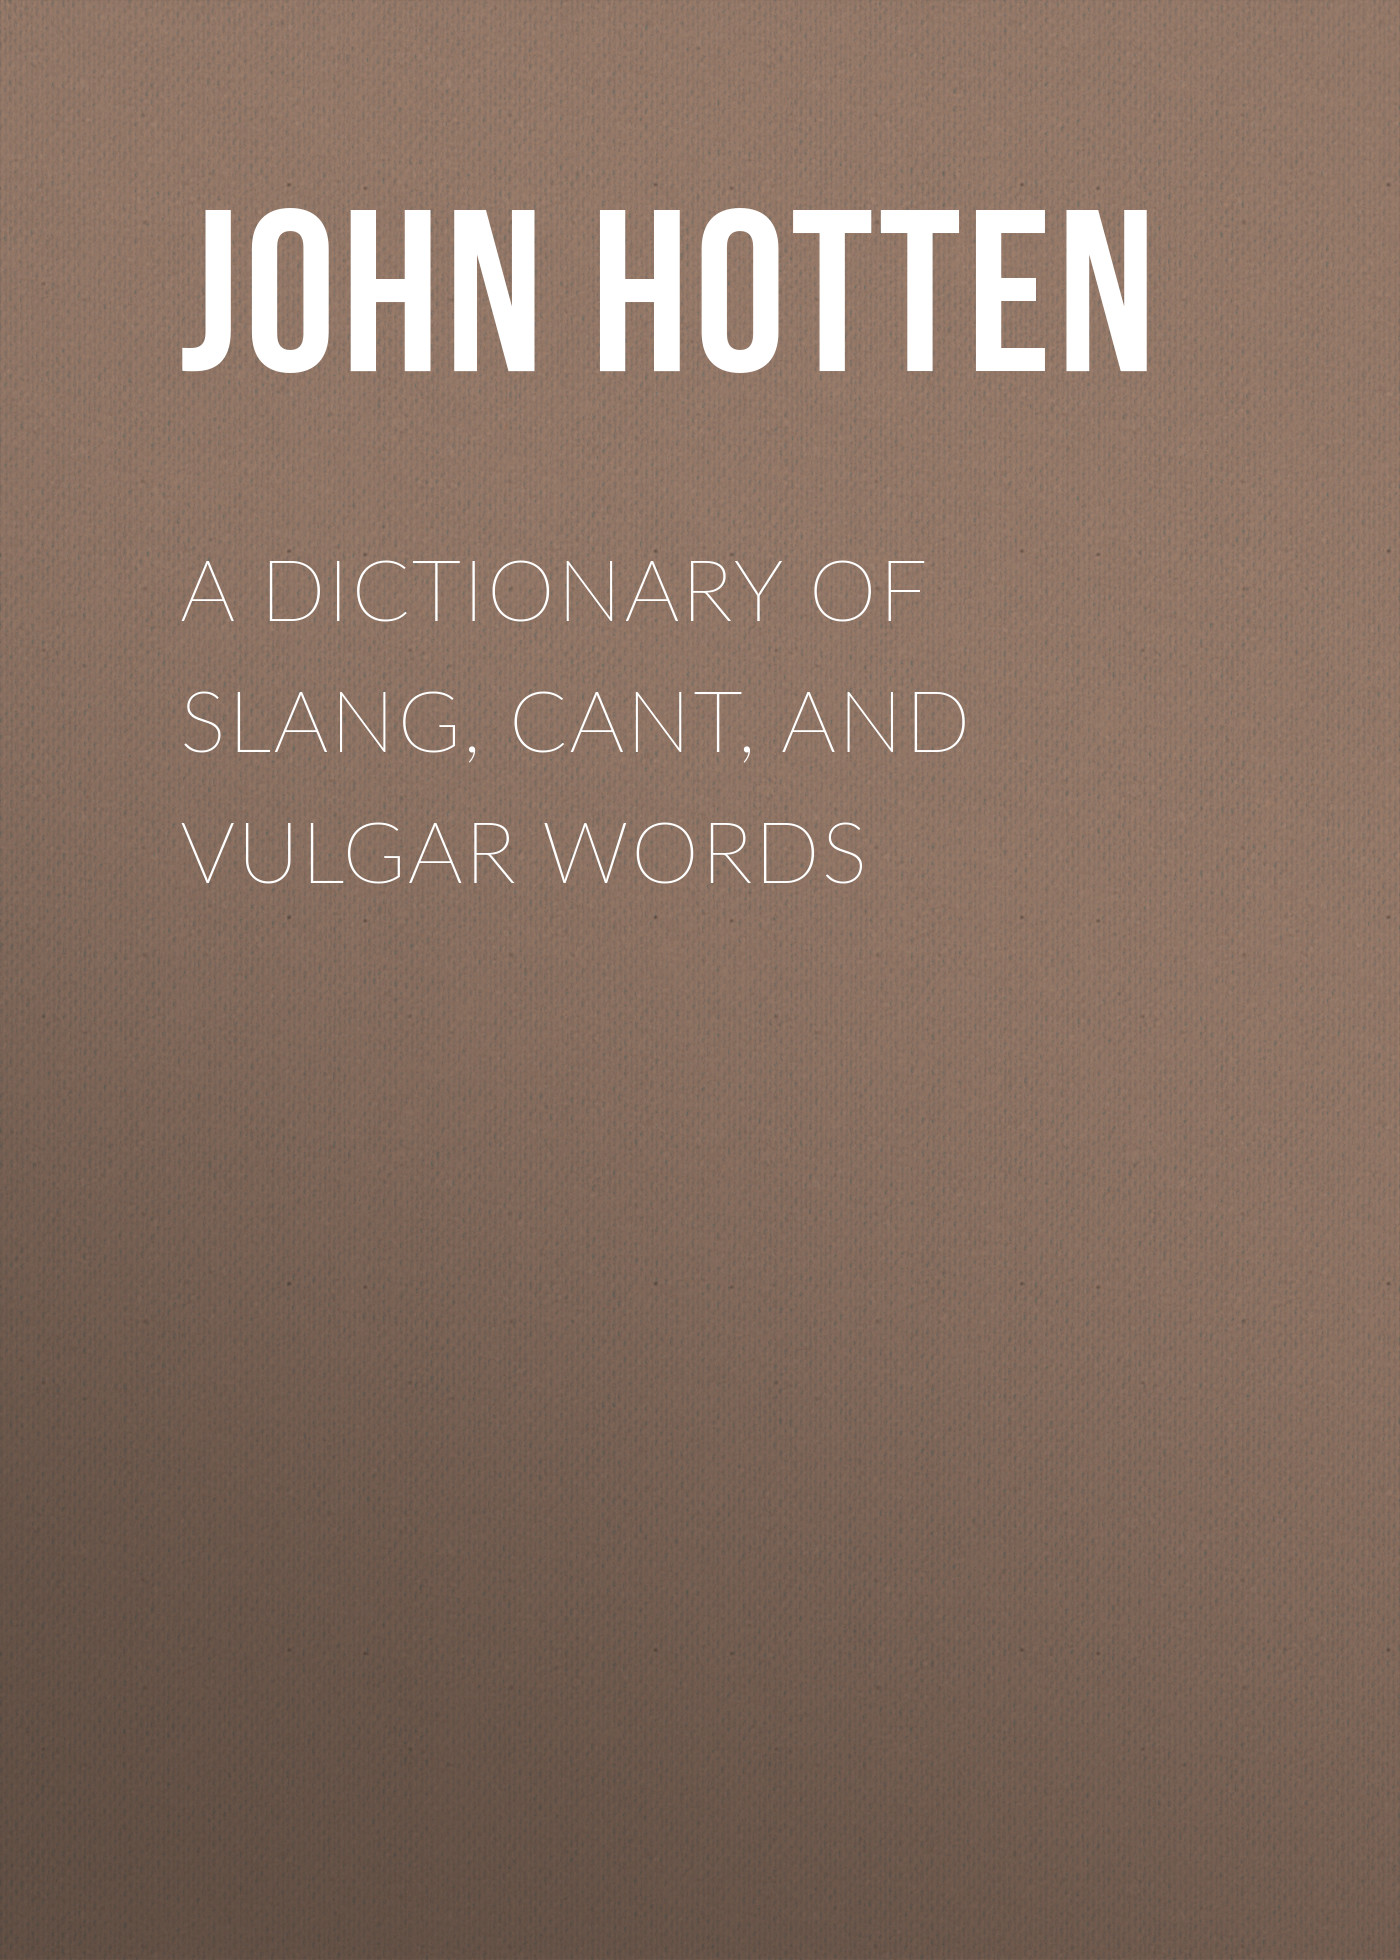 Hotten John Camden A Dictionary of Slang, Cant, and Vulgar Words